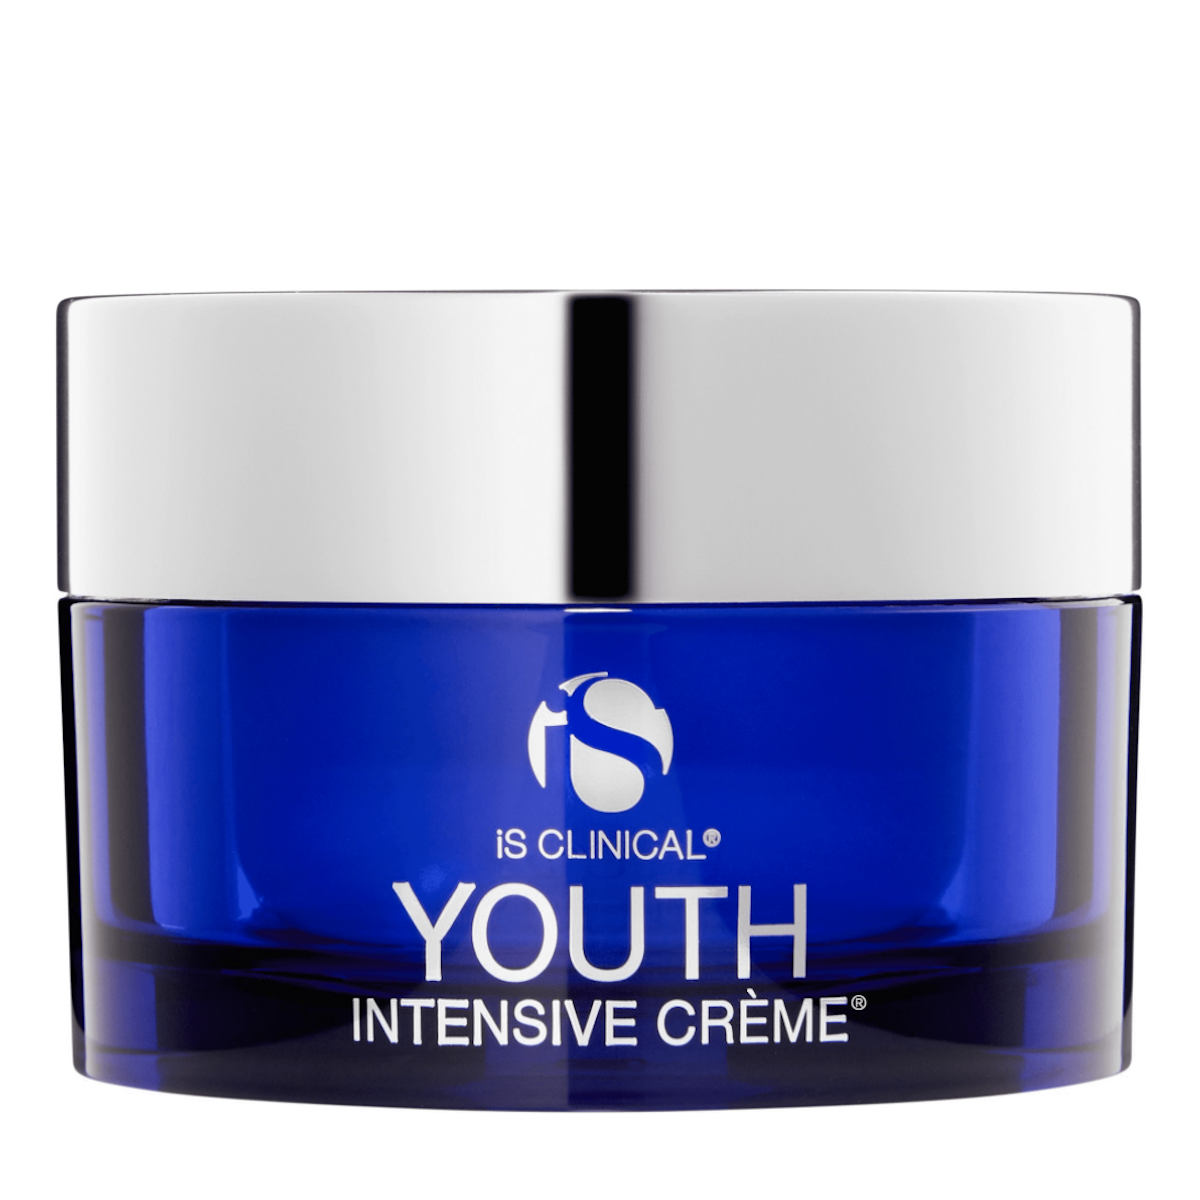 iS Clinical Youth Intensive Creme in blue jar